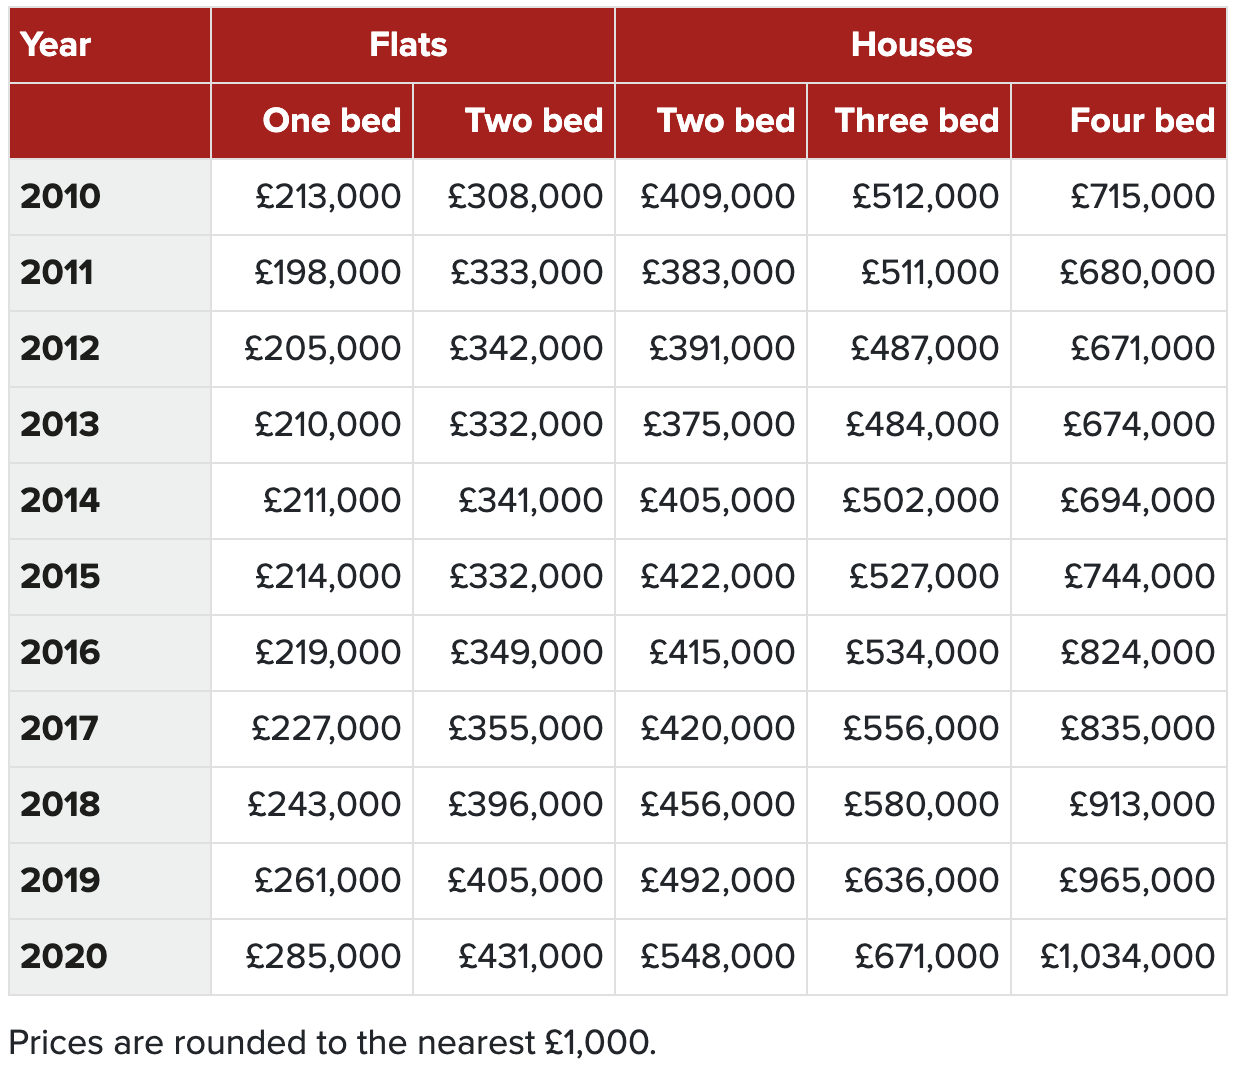 houseprices.png